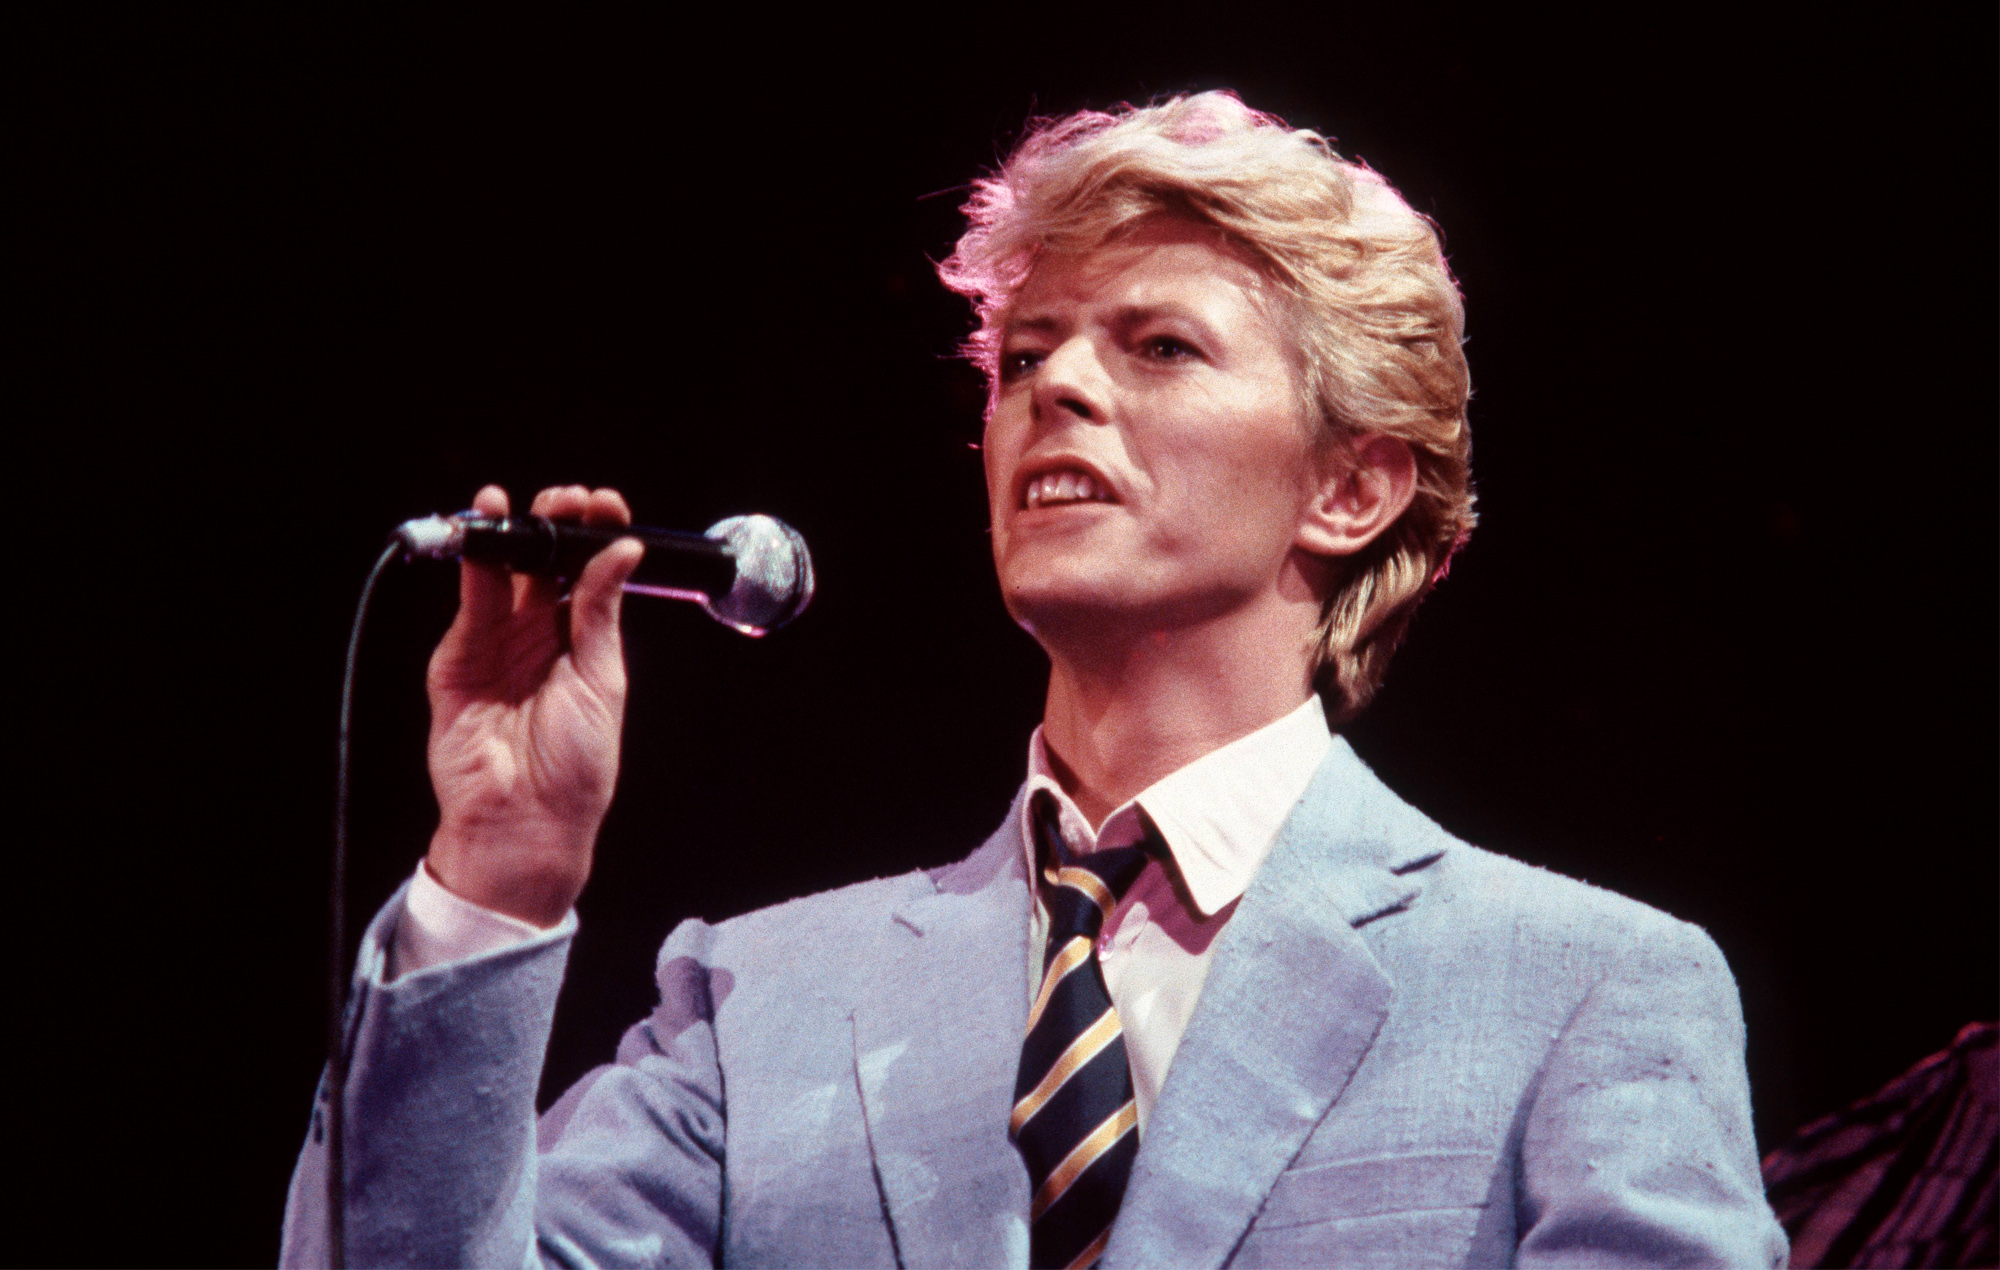 Owners Of Australian Pub In David Bowie S Let S Dance Video Reveal Why They Re Selling It